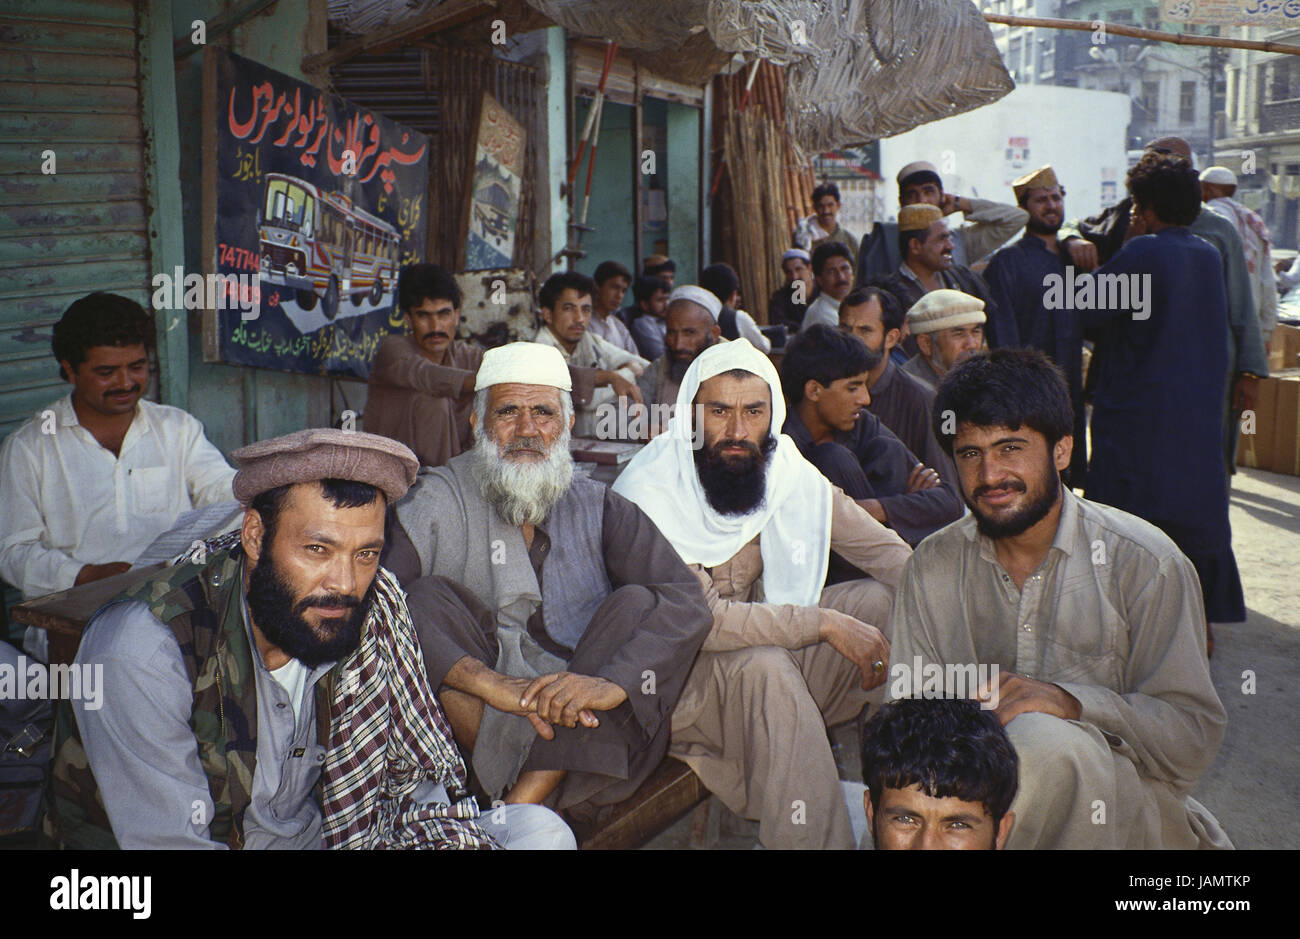 Pakistan,Belutschistan,Quetta,men,Mujaheddin,in Afghan manner,group picture,no model release,Asia,person,locals,clothes,headgear,traditionally,beards,religious - Stock Image